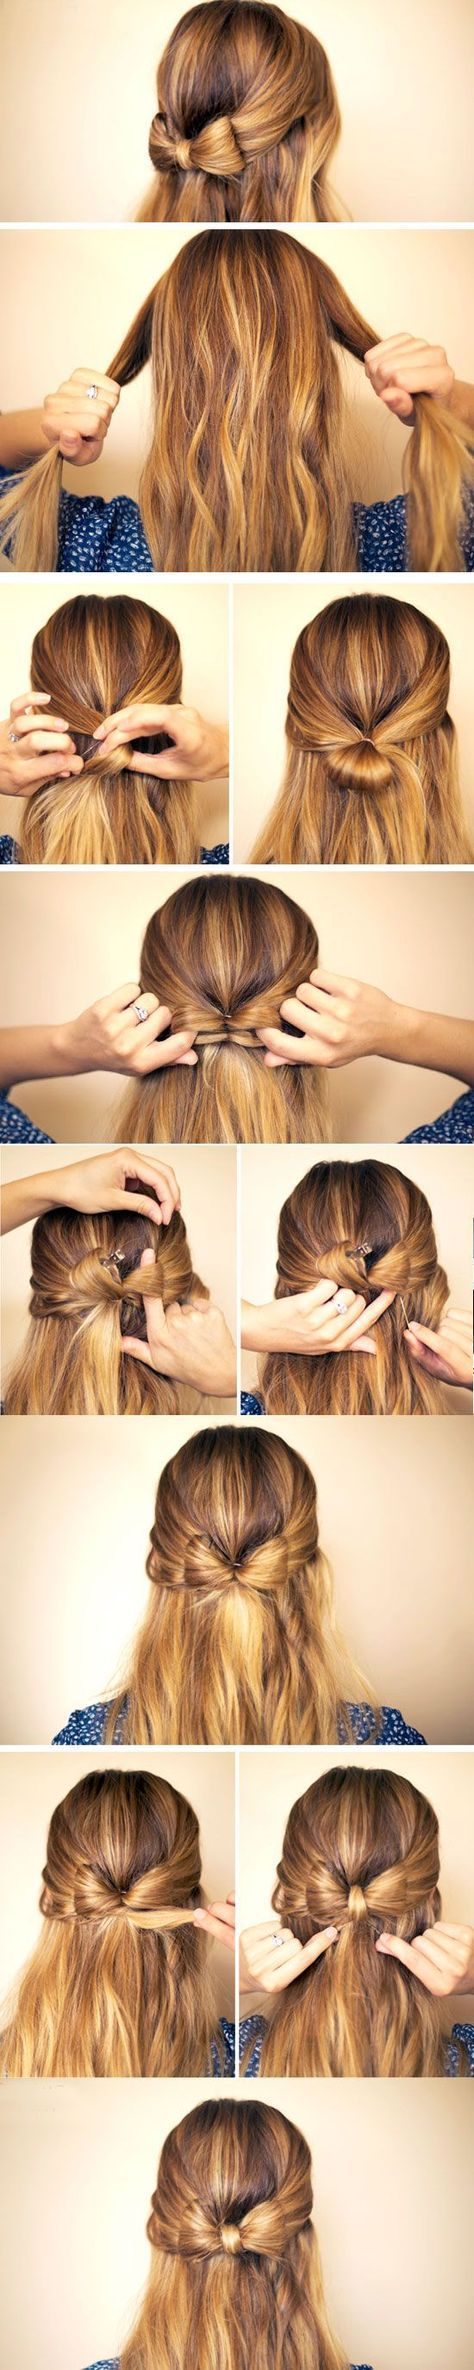 fashionable step by step hairstyle tutorials hairstyles